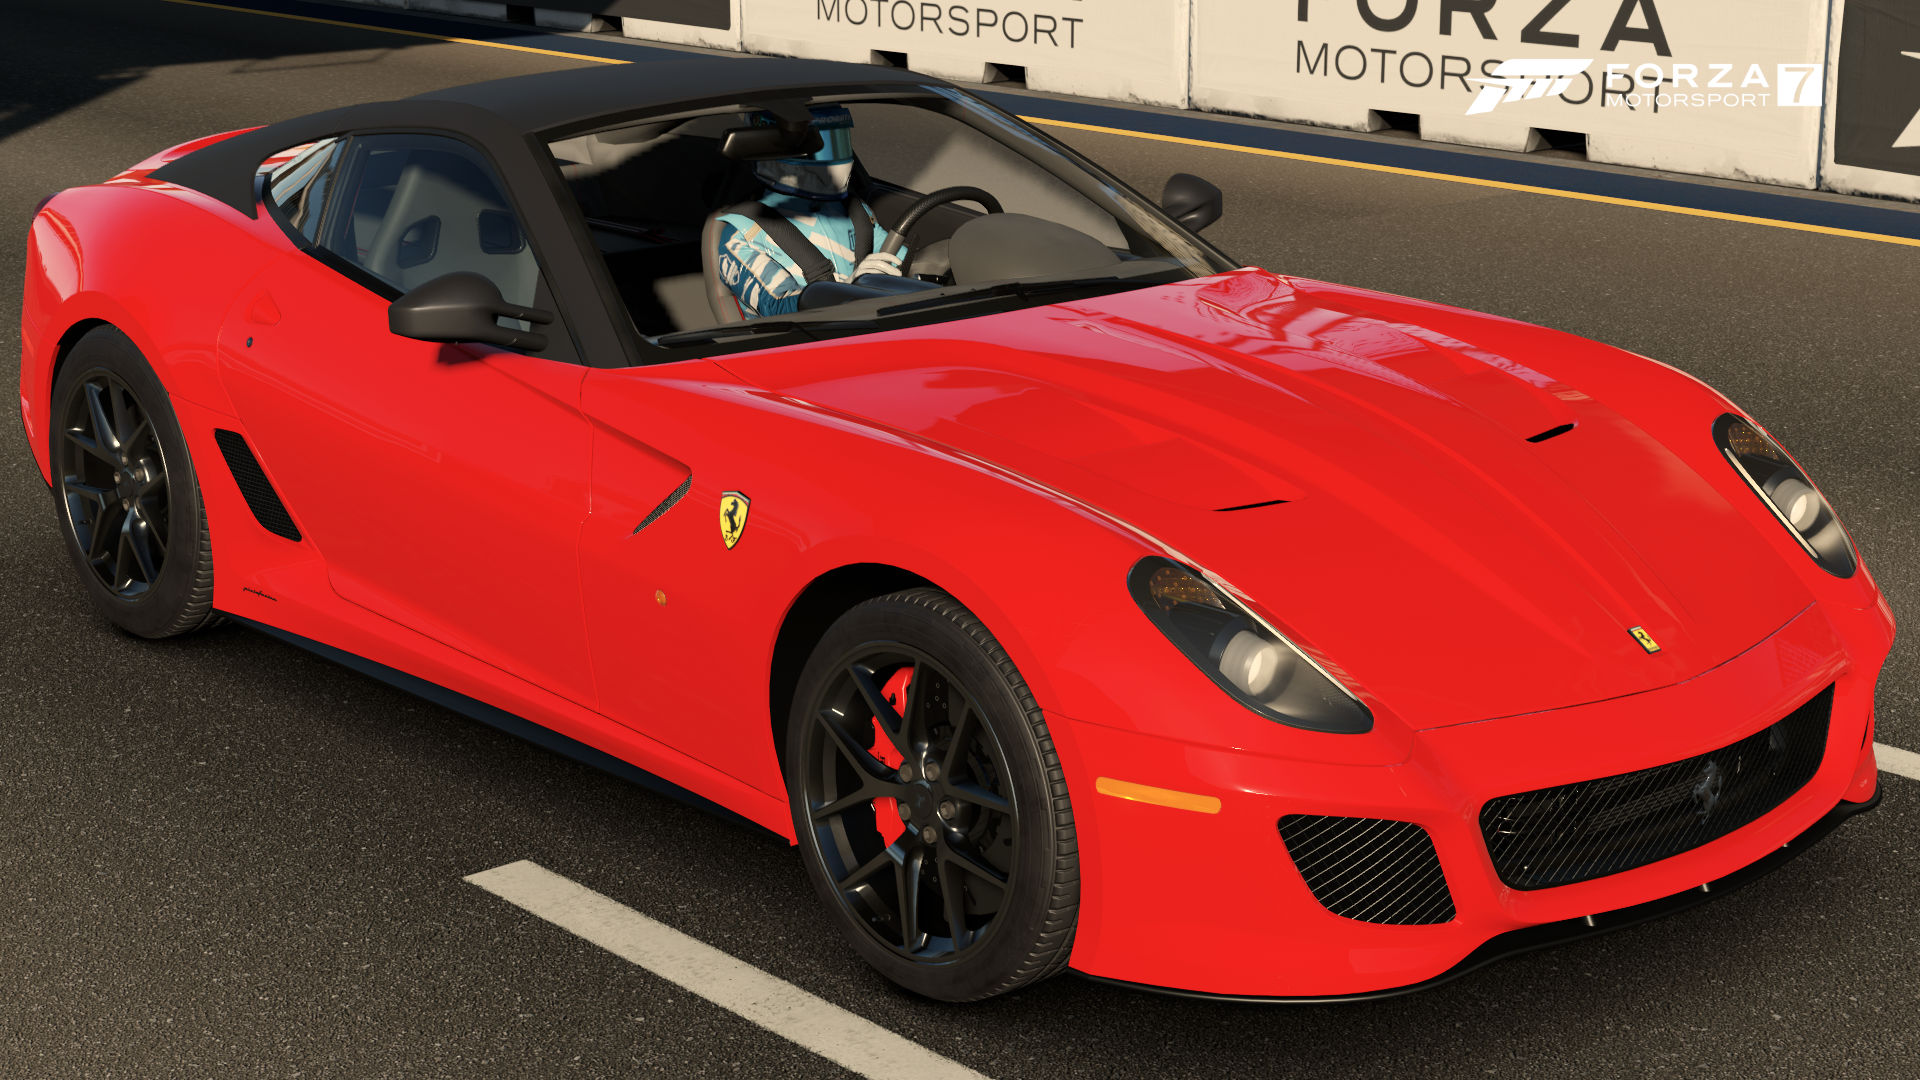 ferrari 599 gto forza motorsport wiki fandom powered by wikia